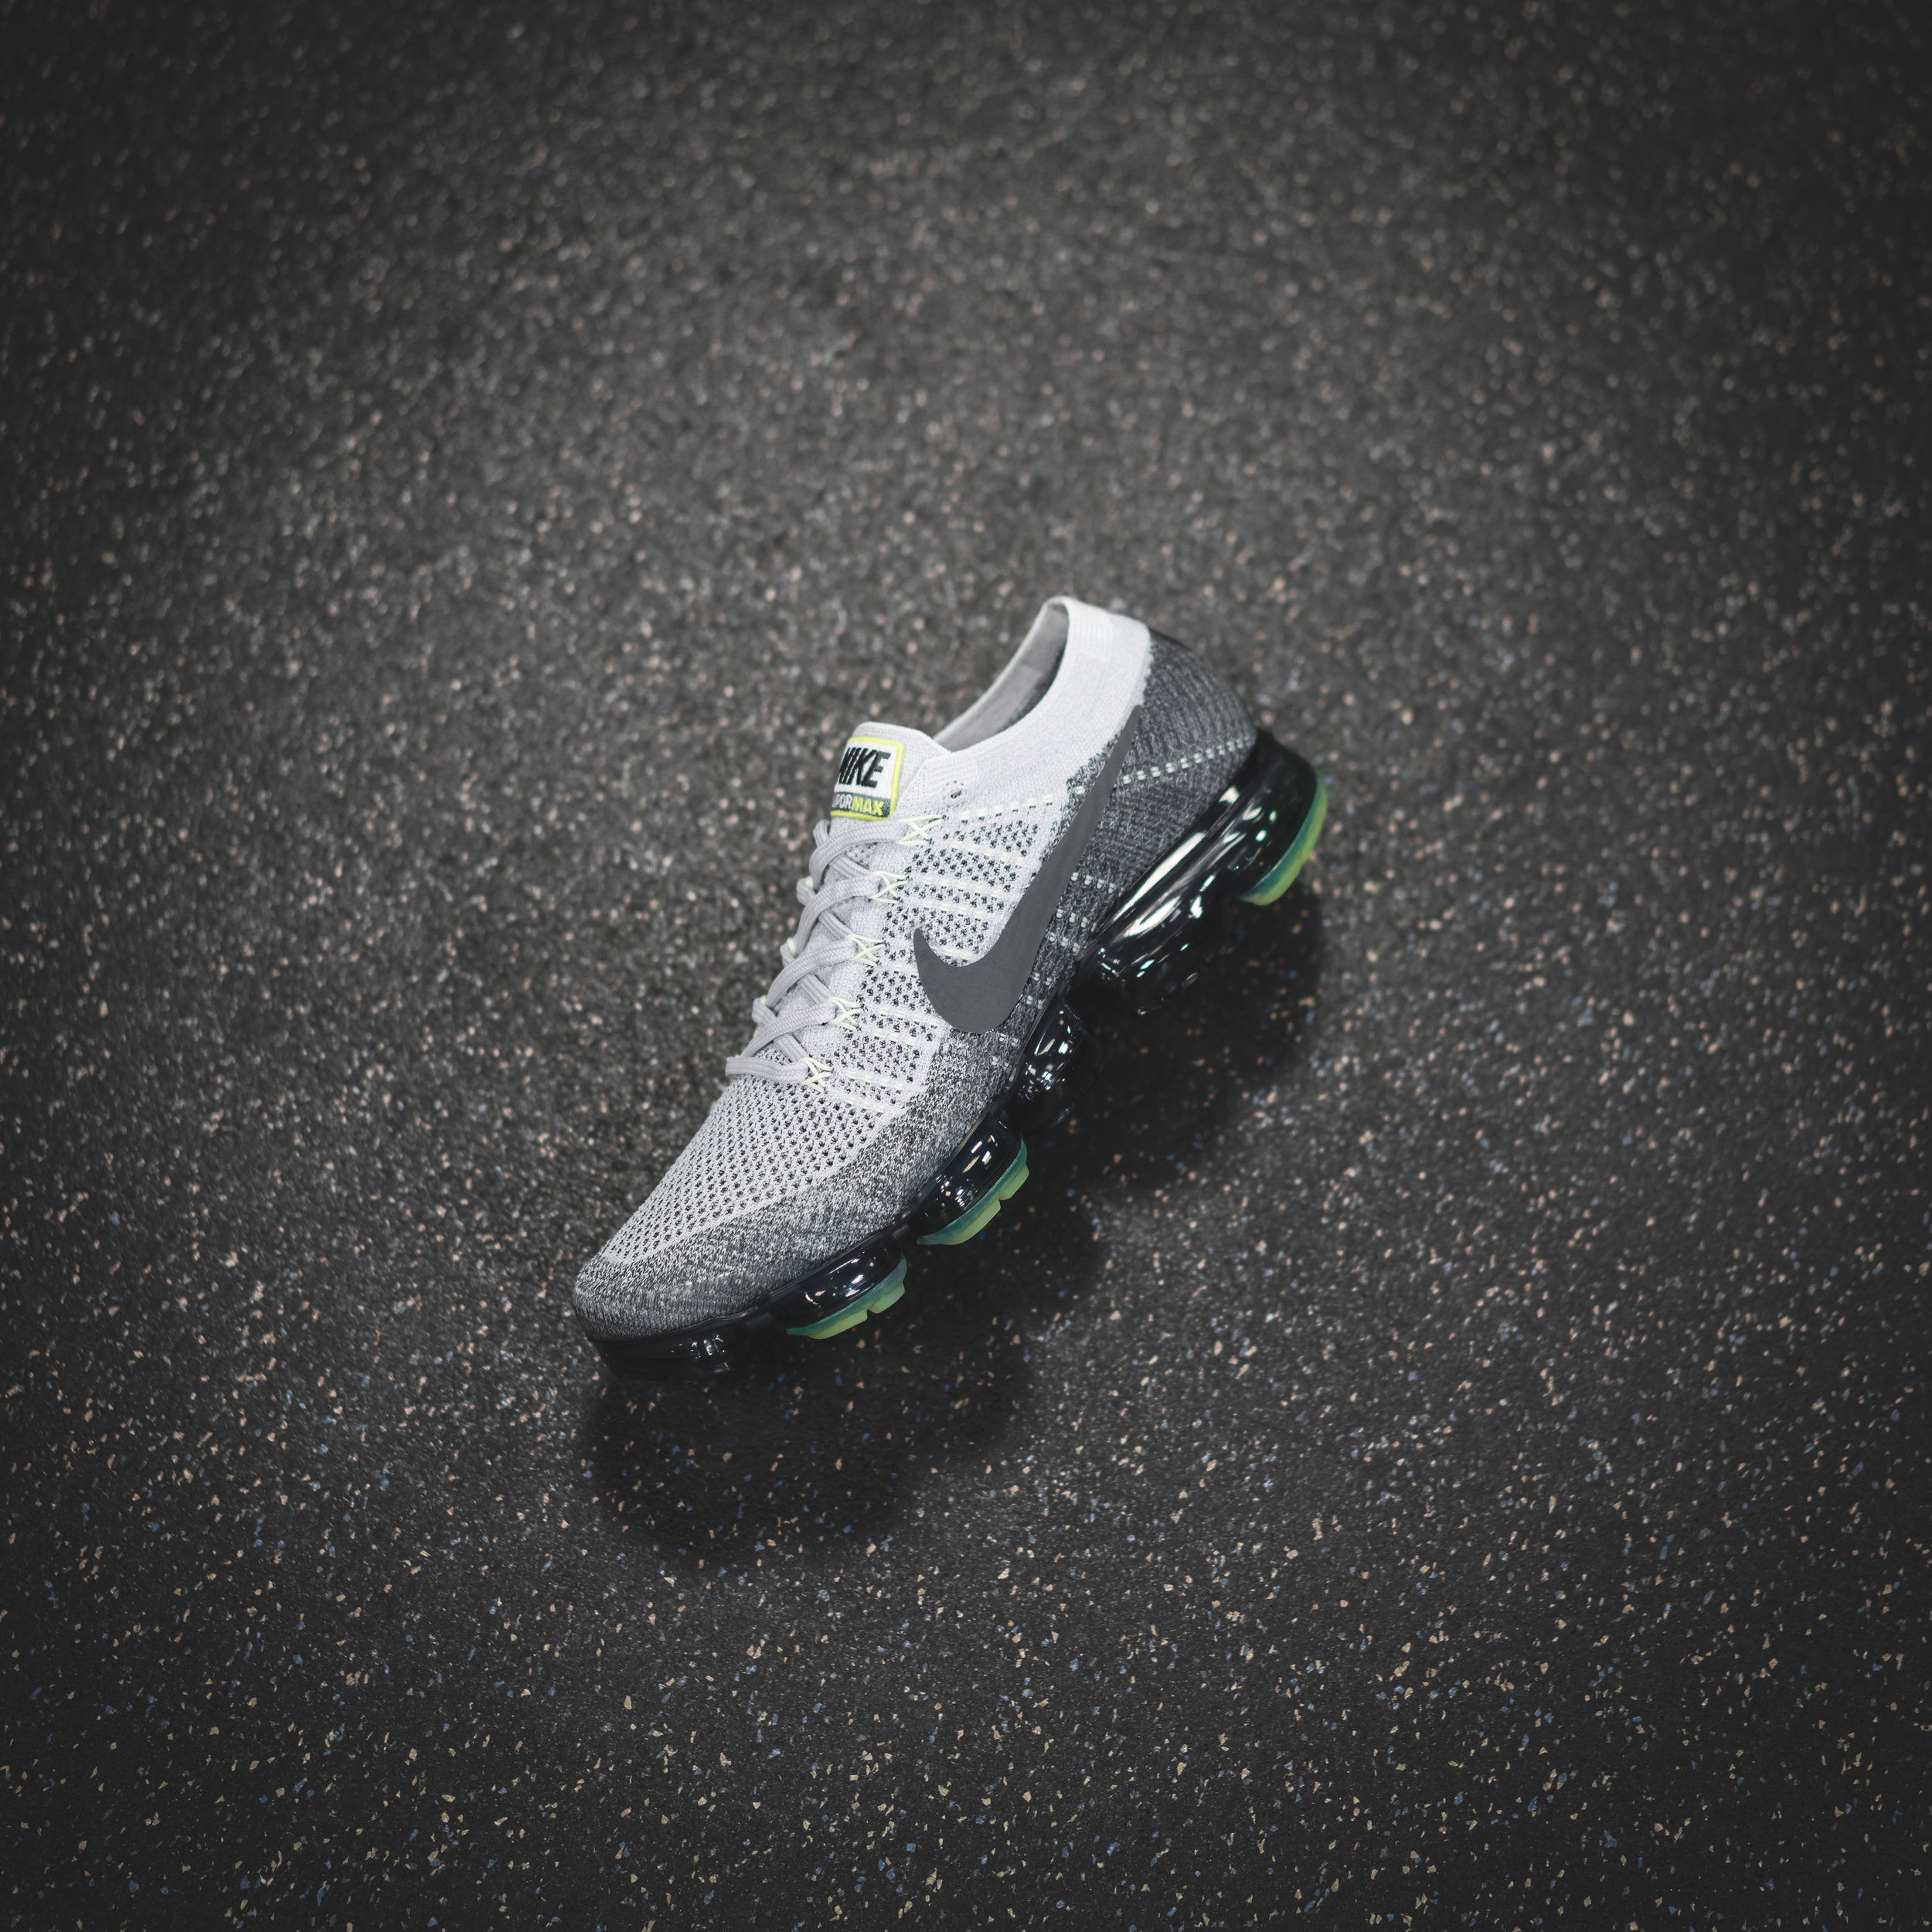 """Vapormax Flyknit featuring the """"Neon"""" colour from the Air Max 95."""